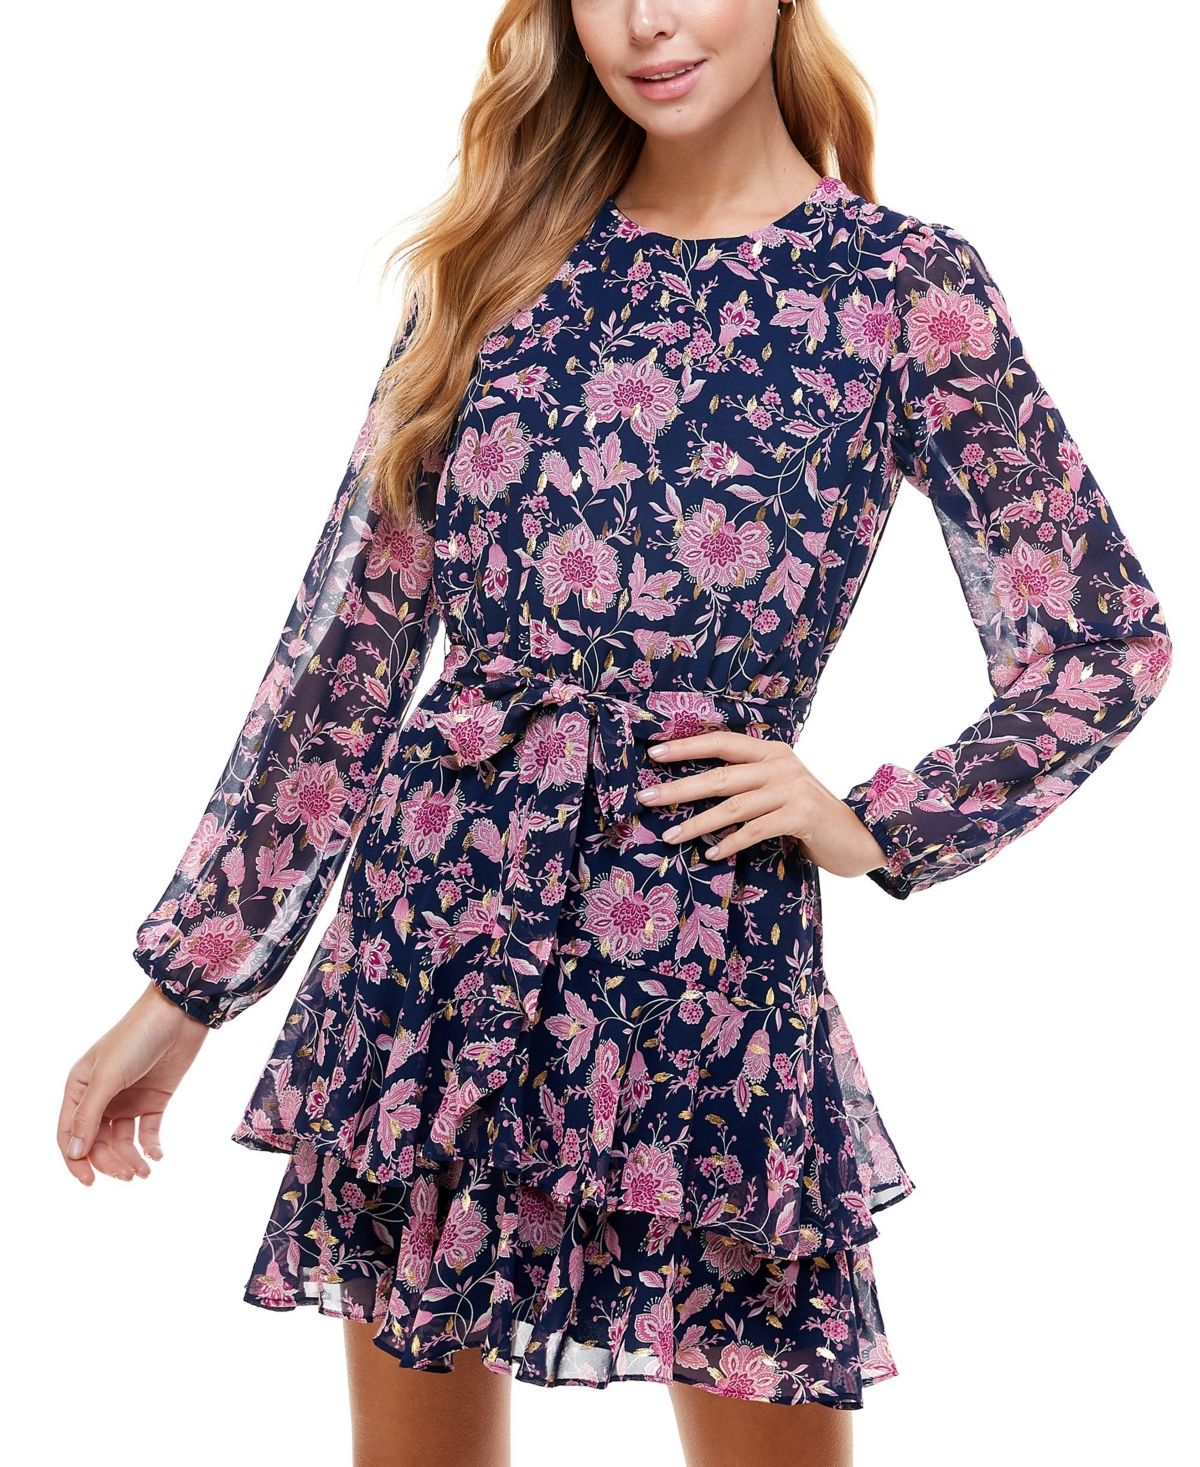 27+ City studios juniors floral embroidered fit flare dress trends